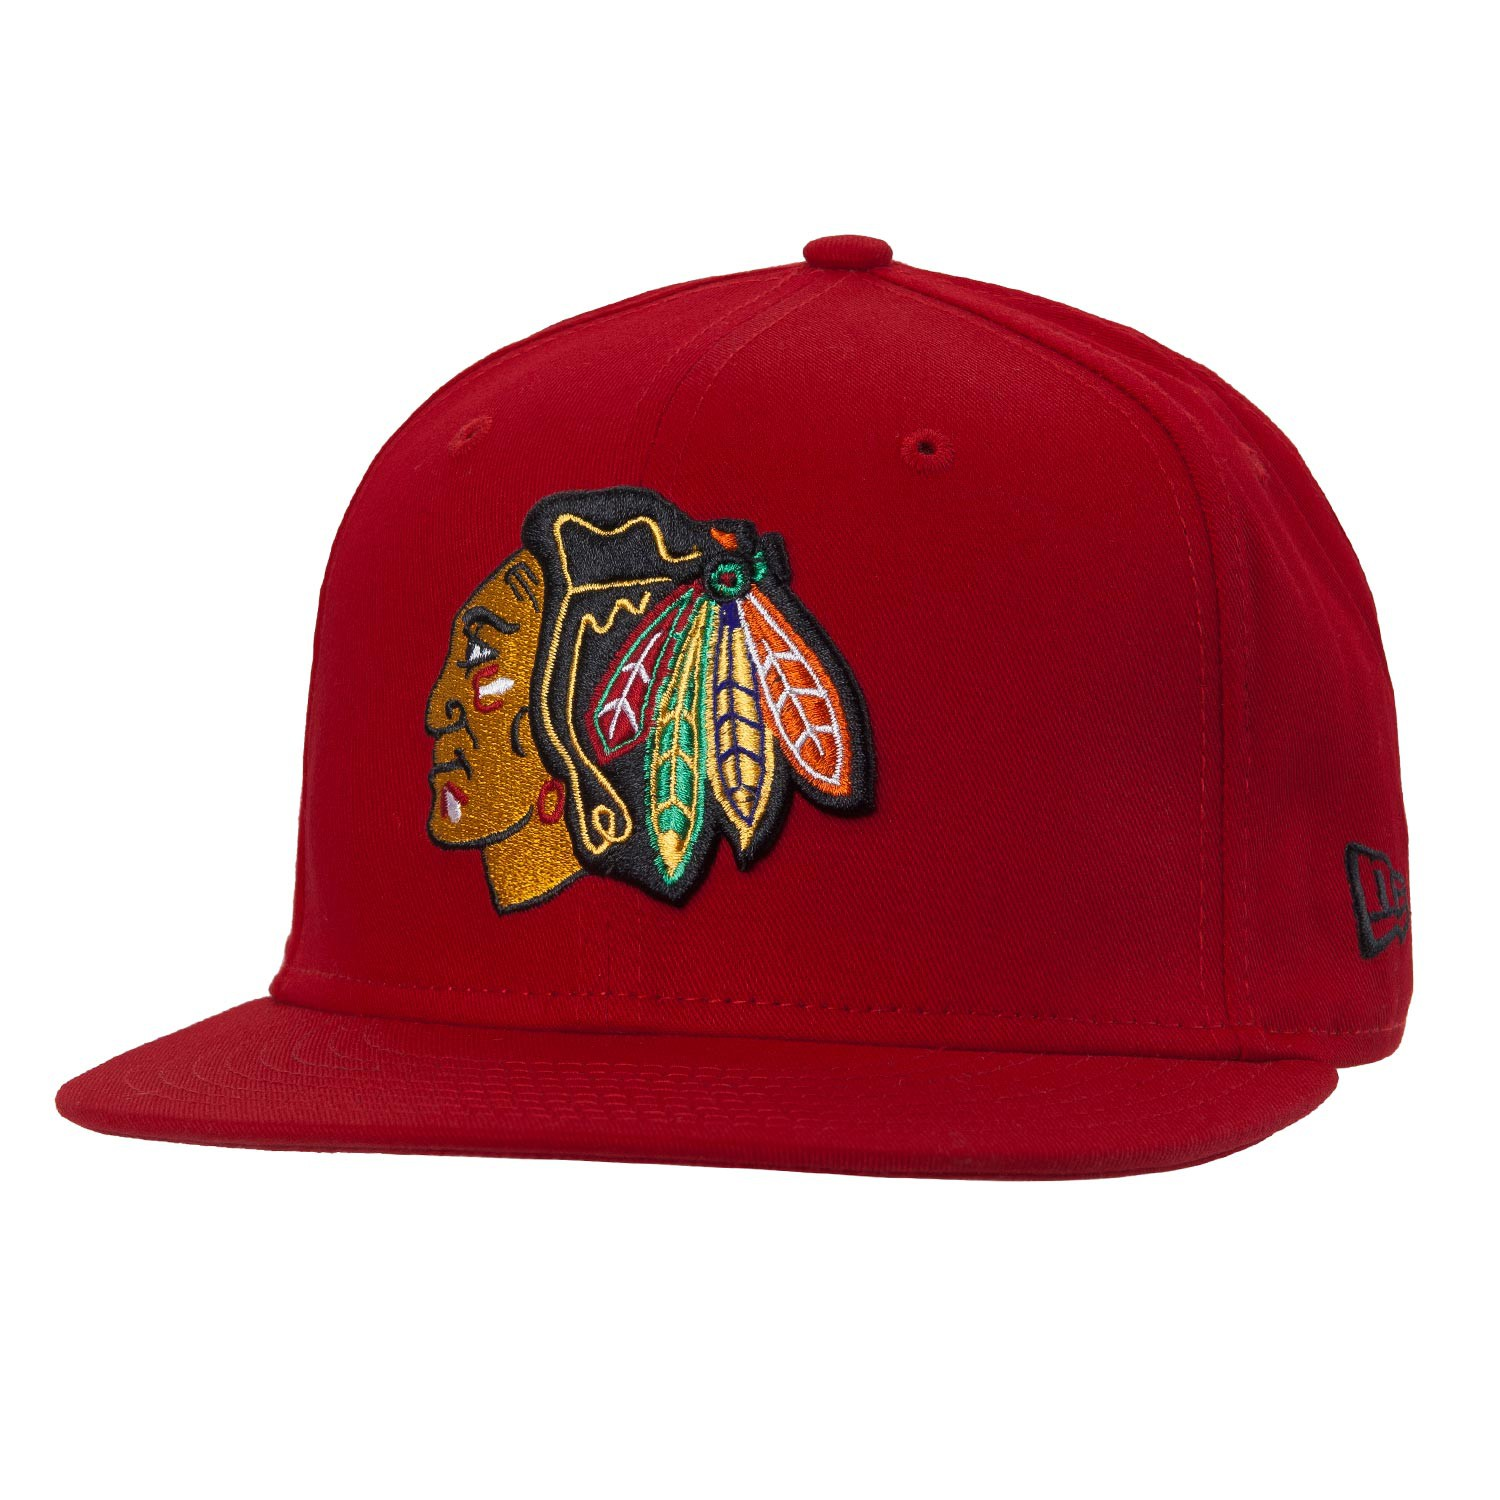 Kšiltovka New Era Chicago Blackhawks 9Fifty Cotton scarlet